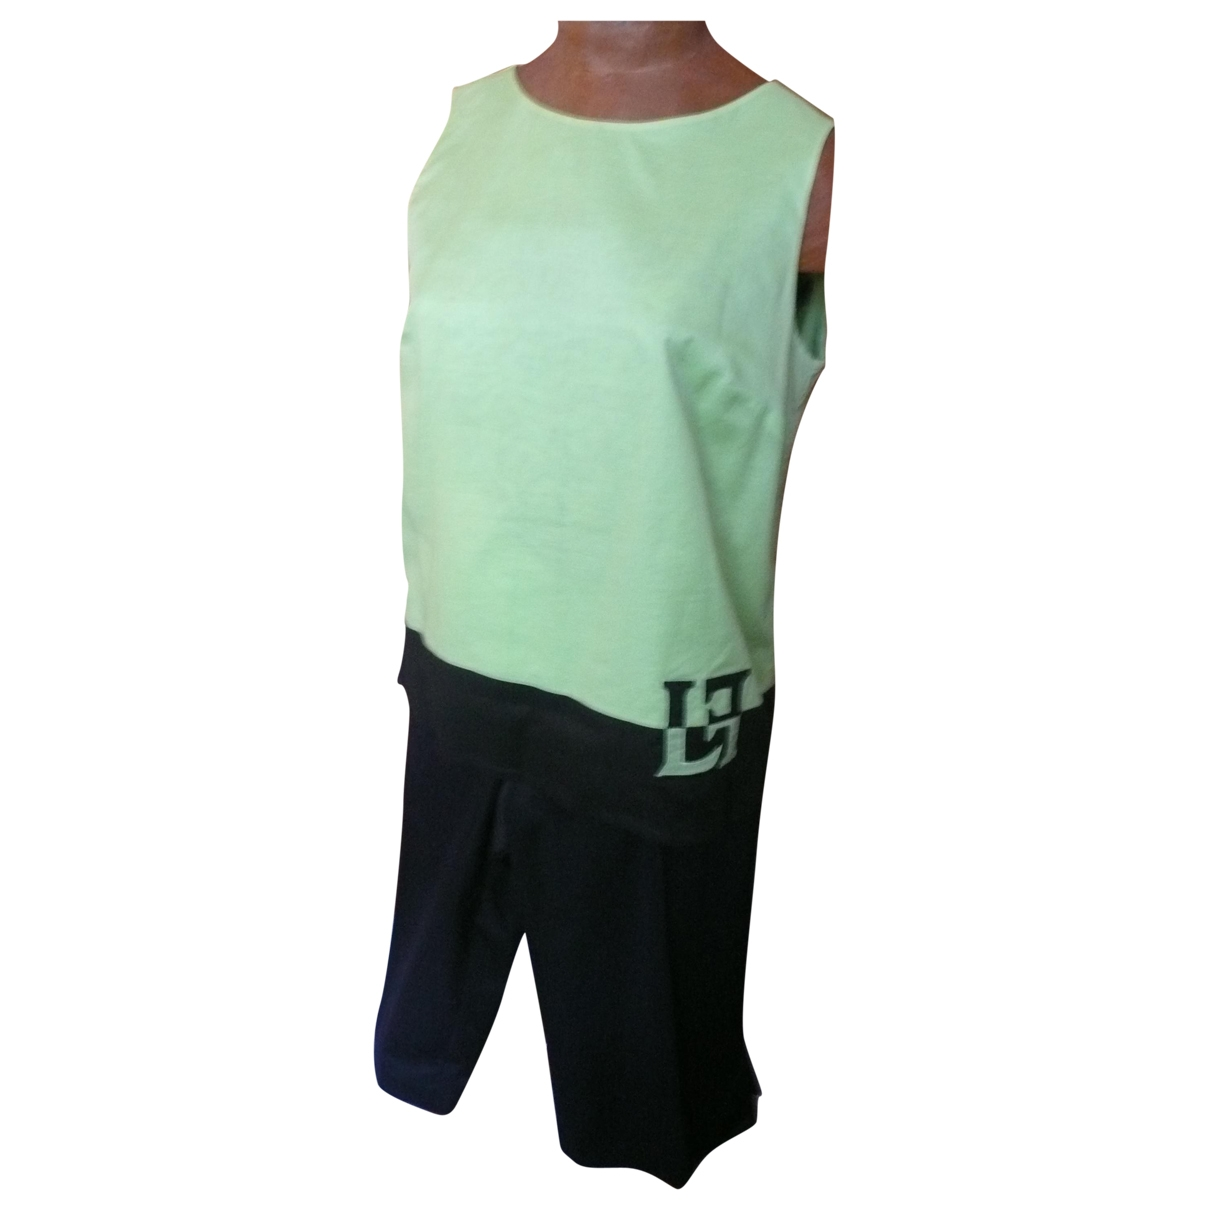 Louis Feraud \N Green Cotton  top for Women 42 FR